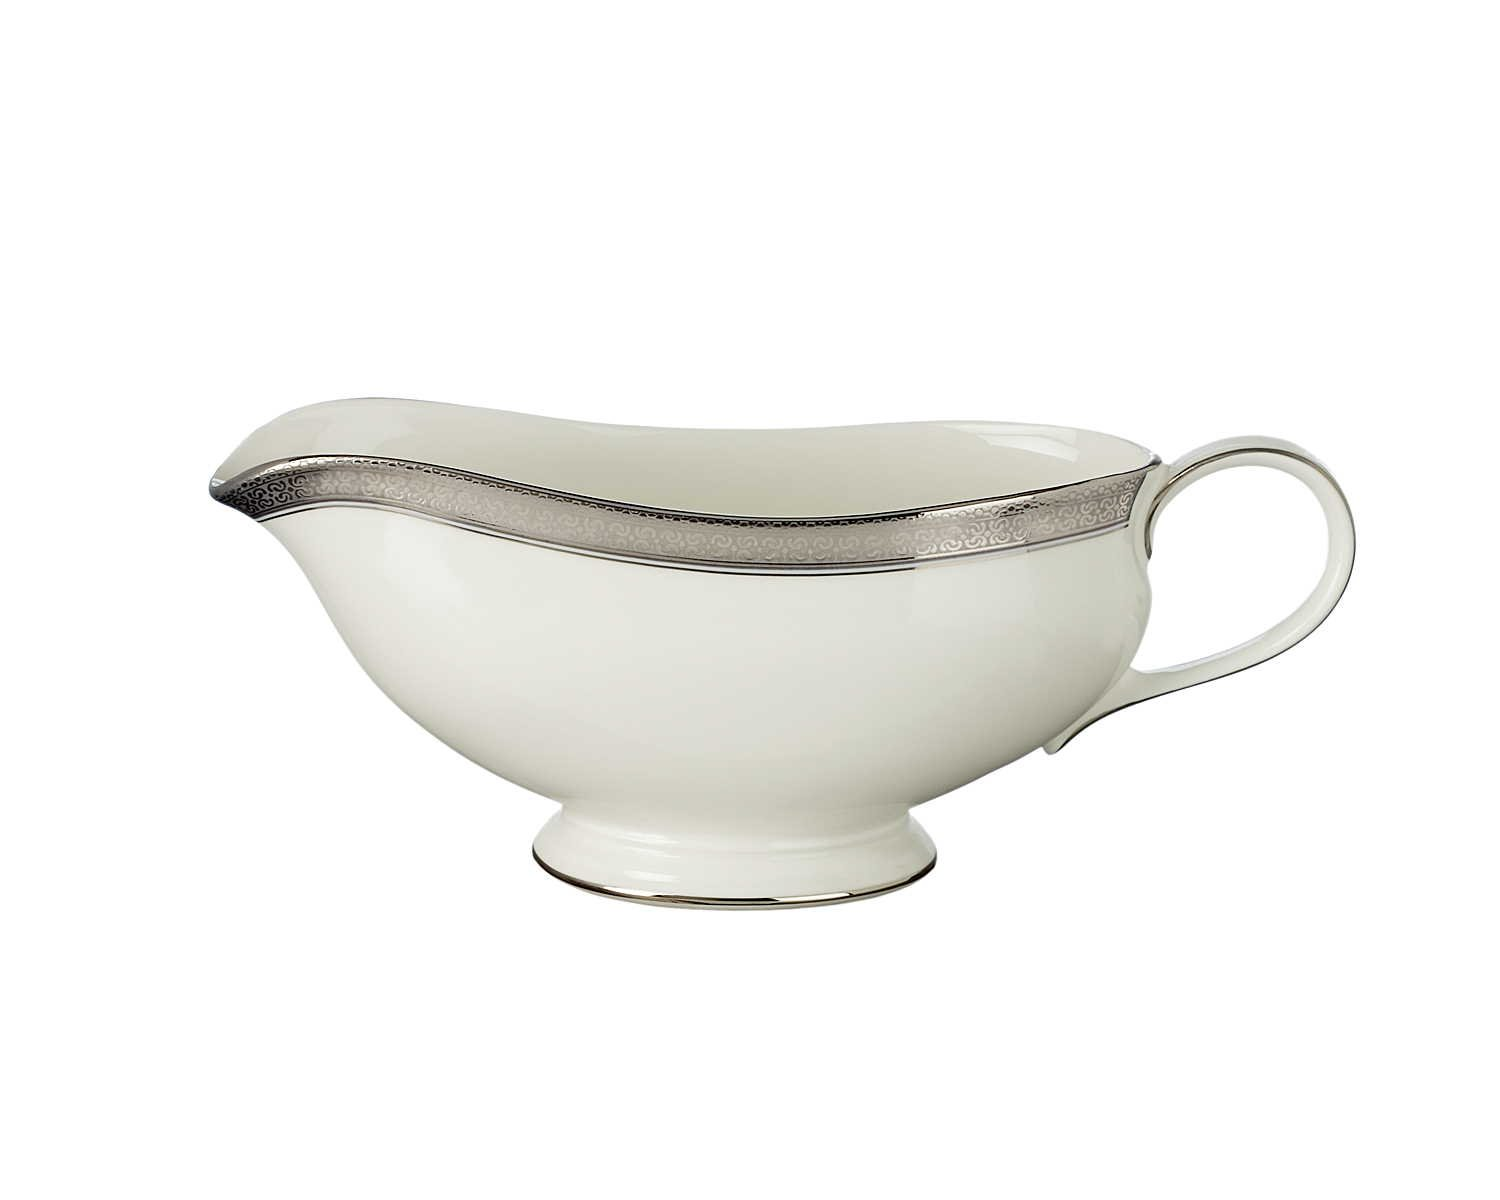 Waterford China New Grange Platinum Gravy Boat